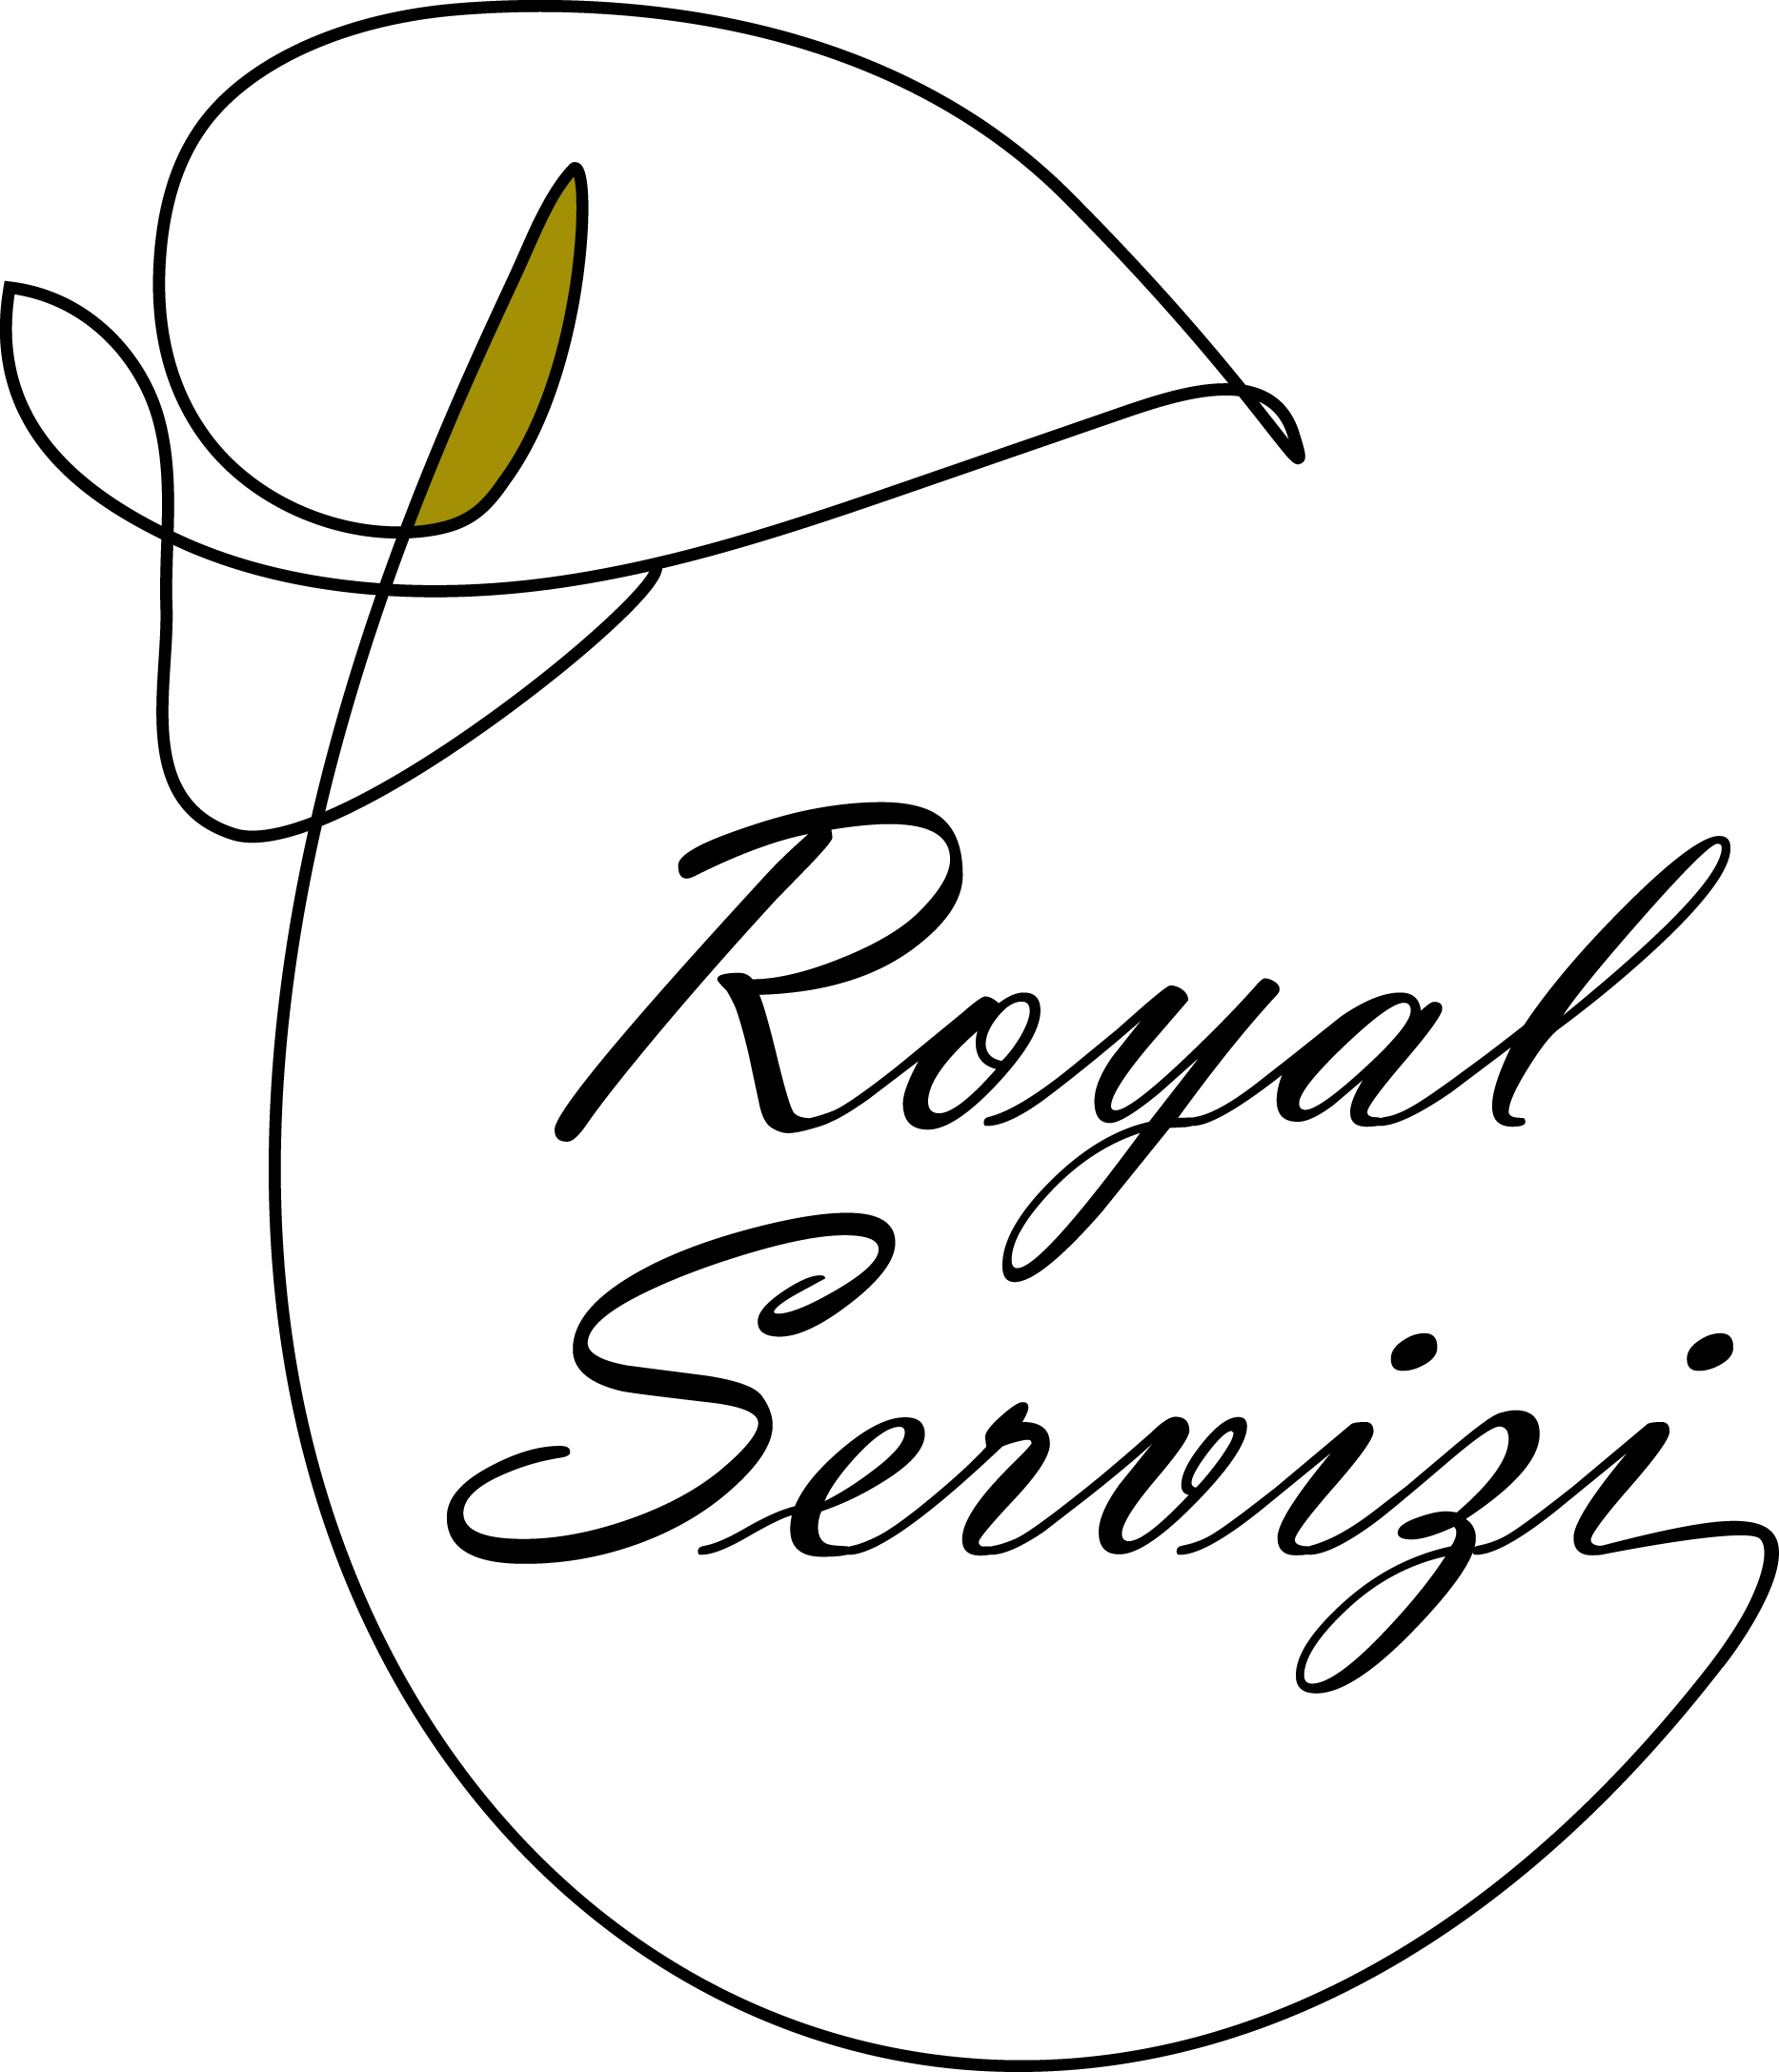 ROYAL C SERVICES Soc. Coop.